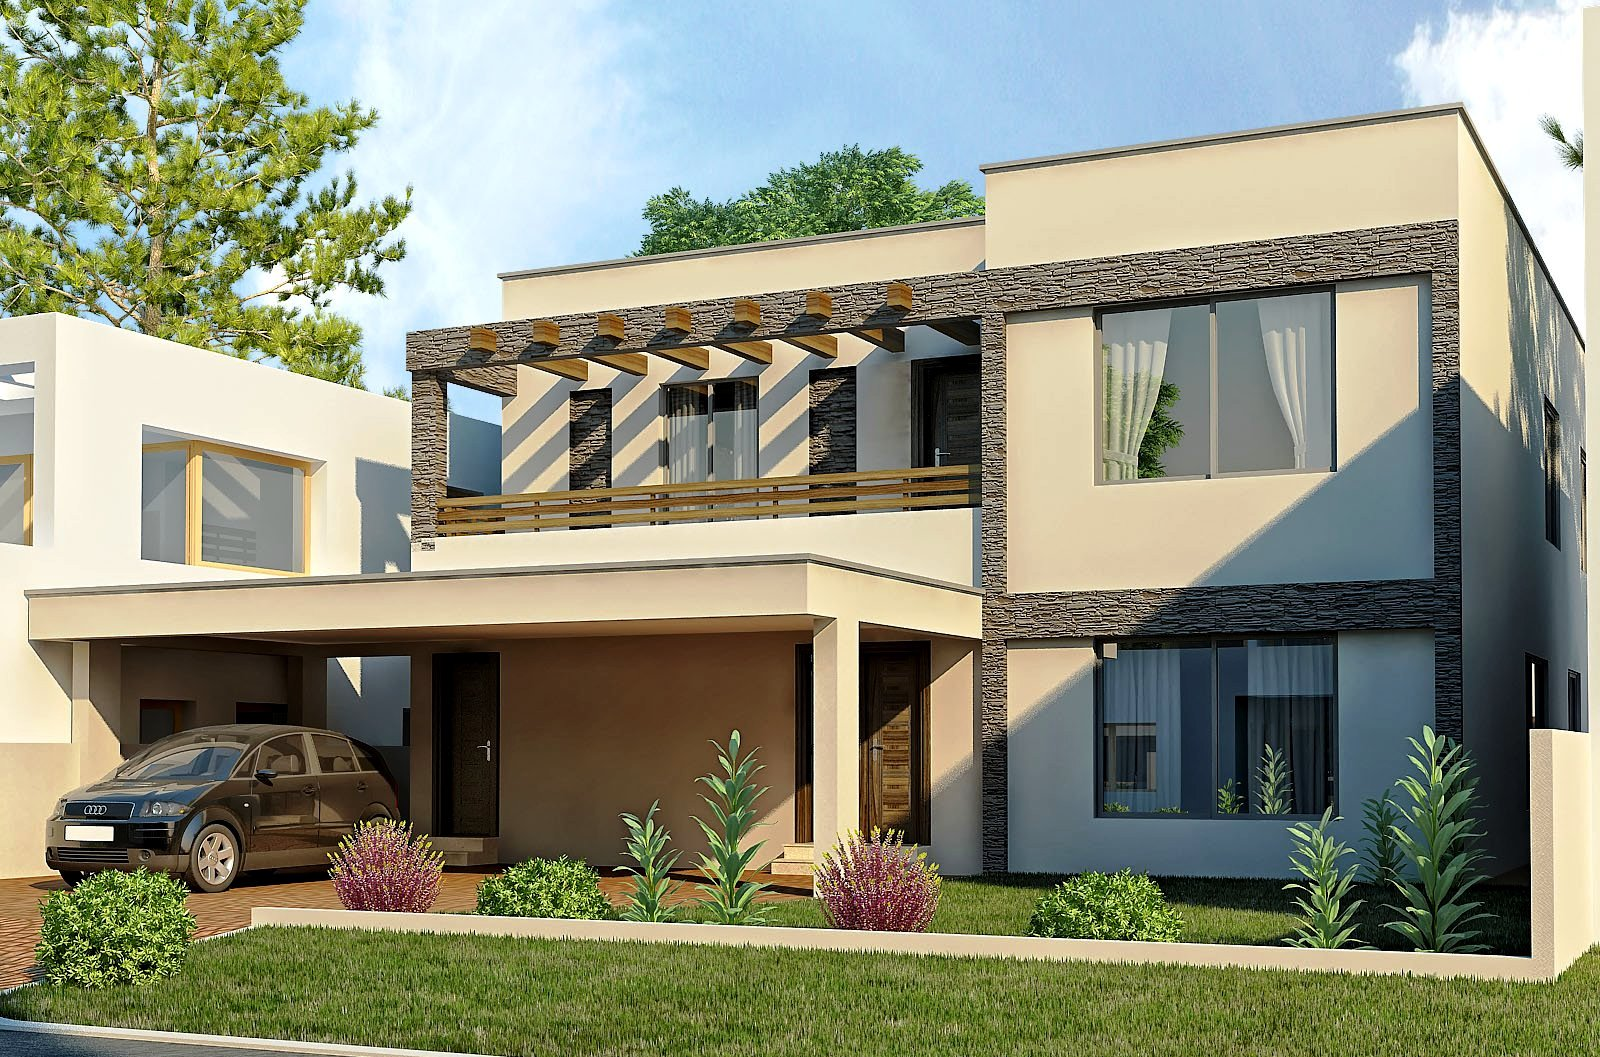 New home designs latest modern homes exterior designs views for Exterior remodeling